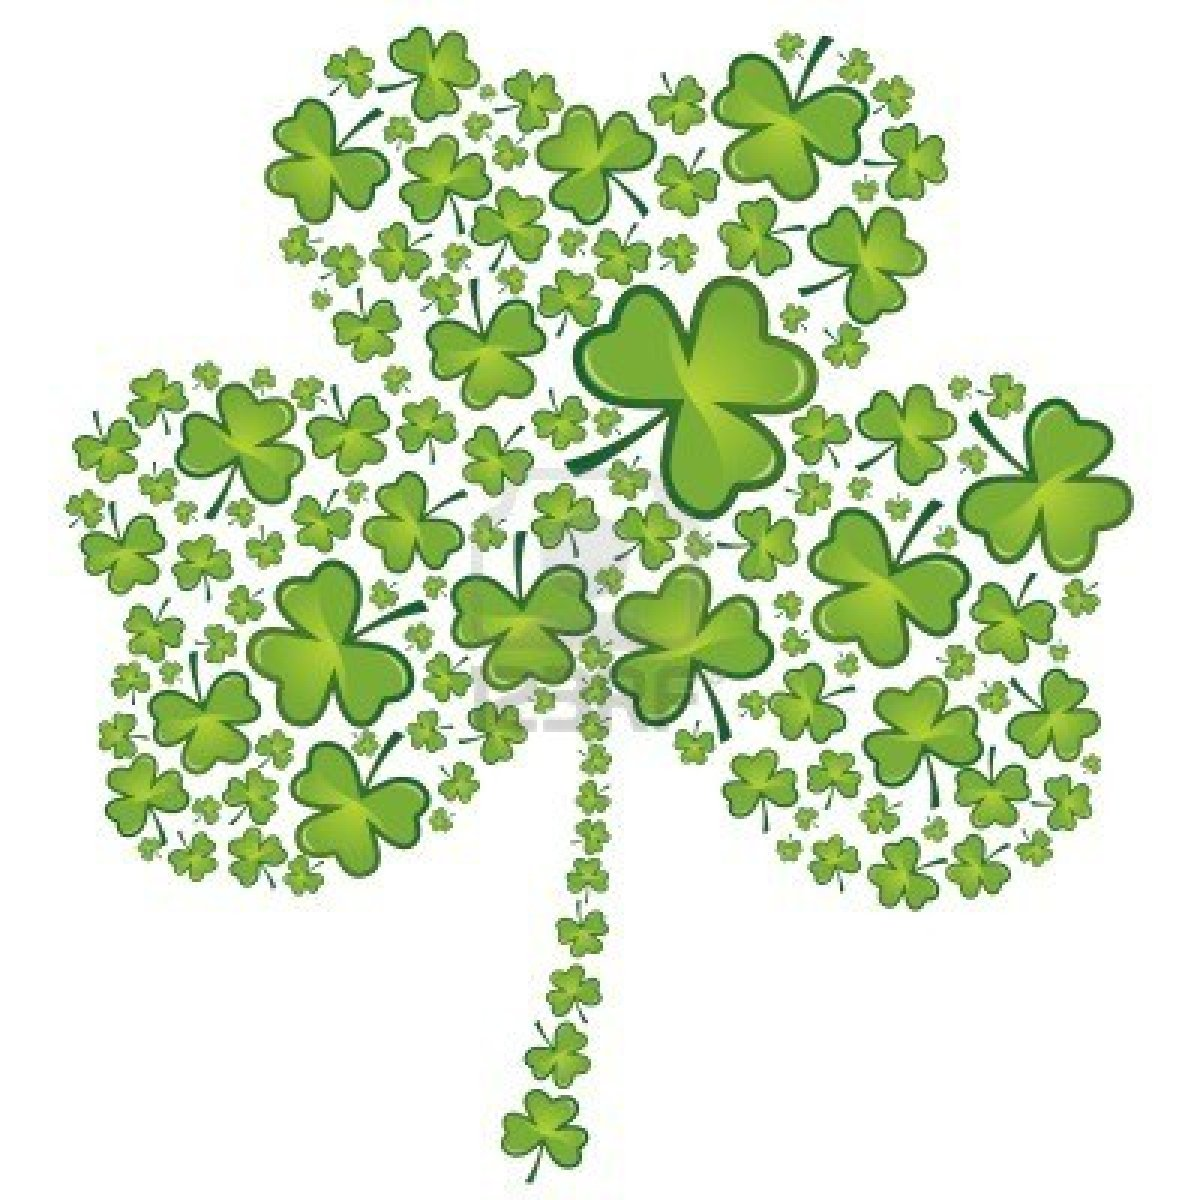 1200x1200 The Day Commemorates Saint Patrick And The Arrival Of Christianity